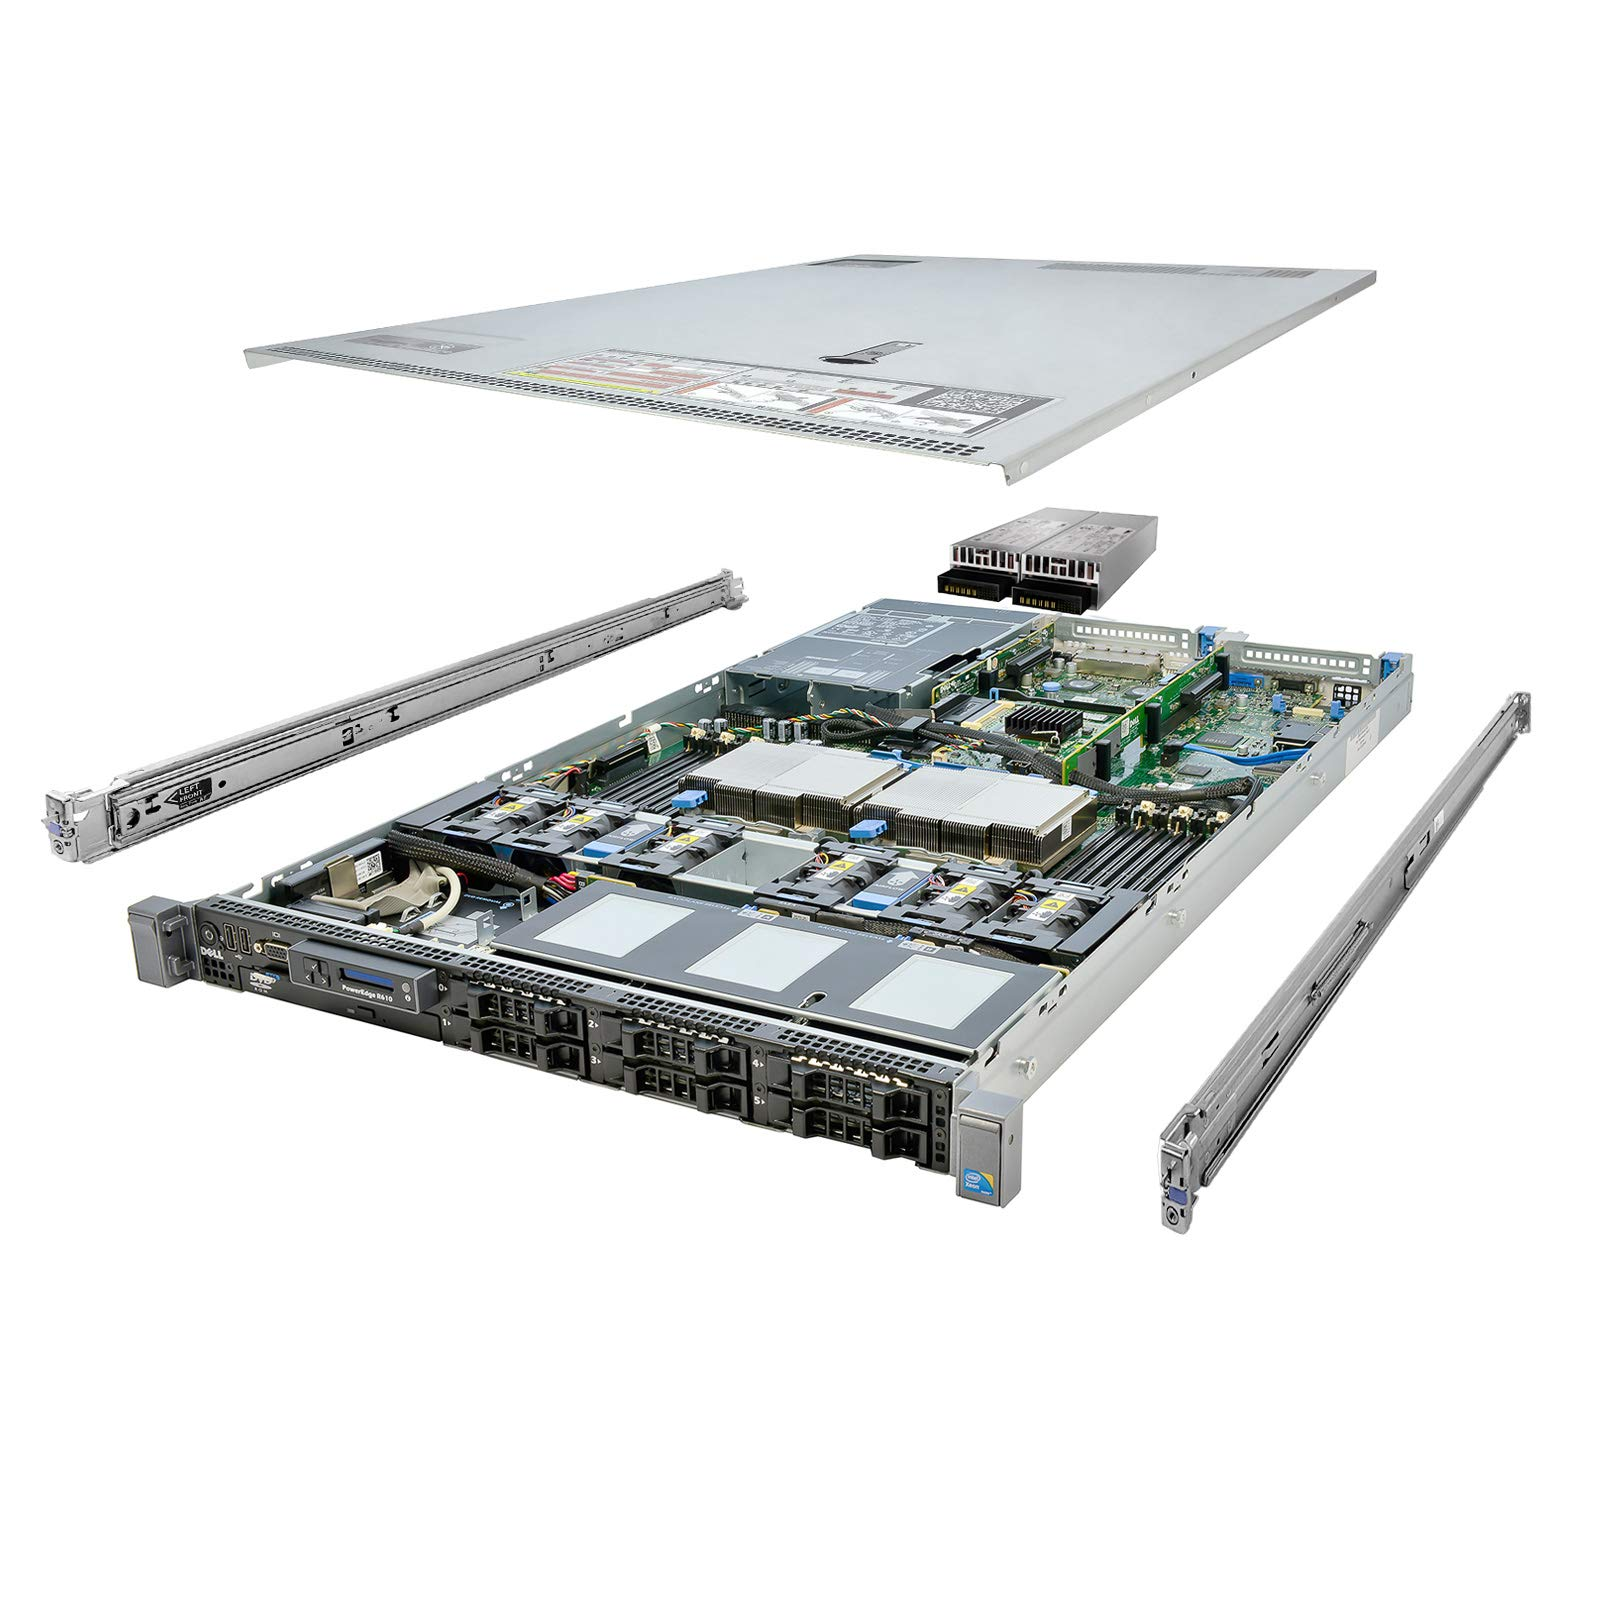 Energy-Efficient Dell PowerEdge R610 Server 12-Core 32GB 2x 146GB 2x 300GB (Renewed) by Dell